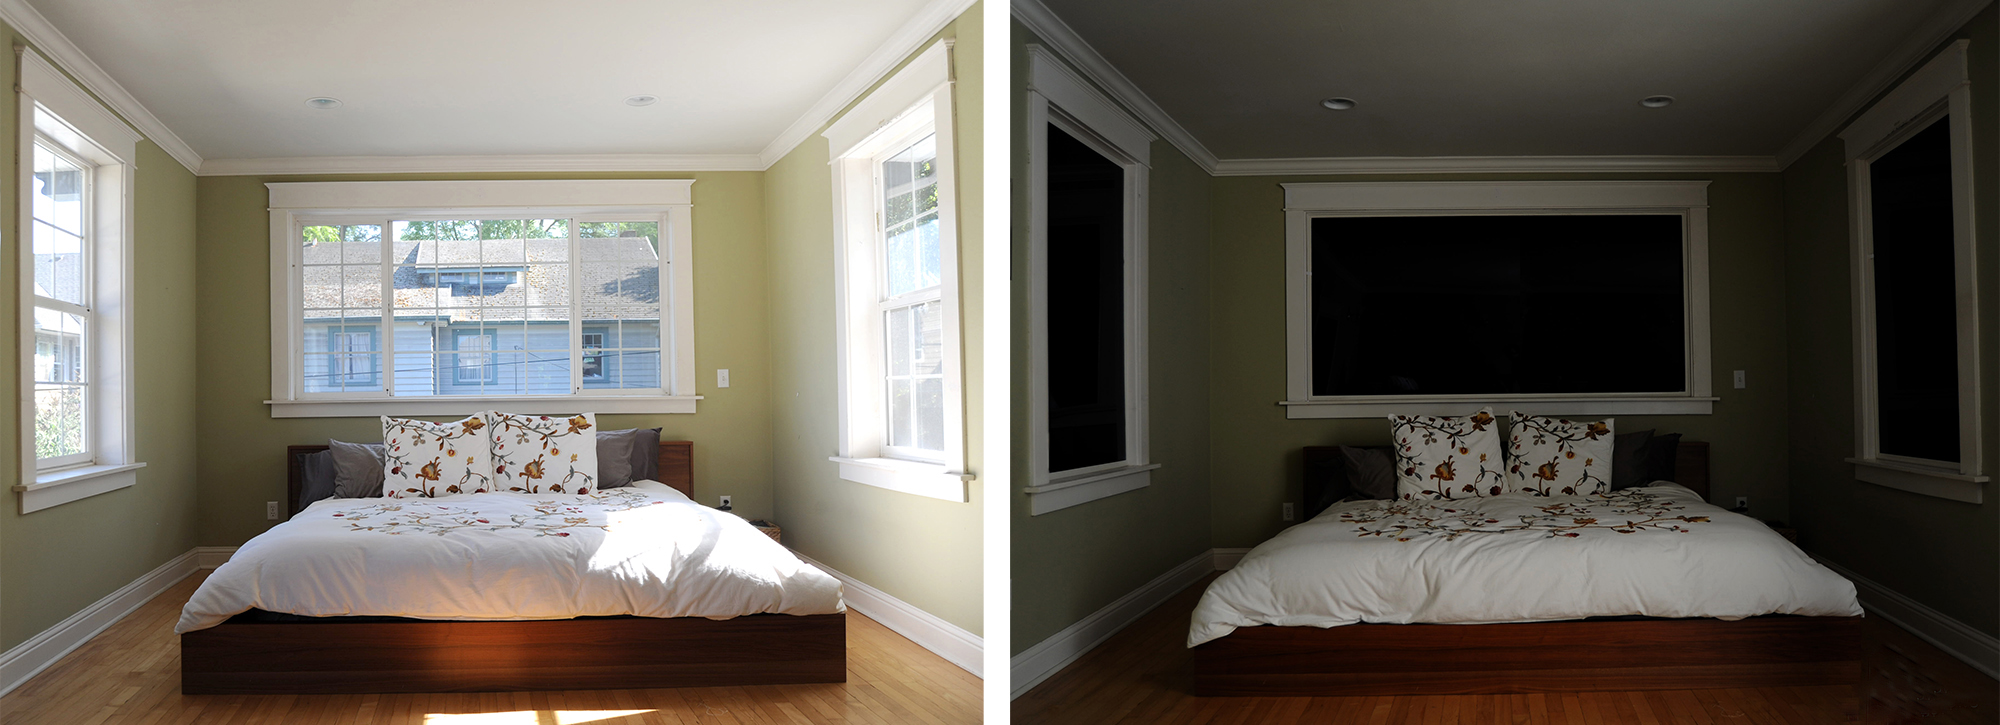 Blackout Shades vs. Room Darkening Shades